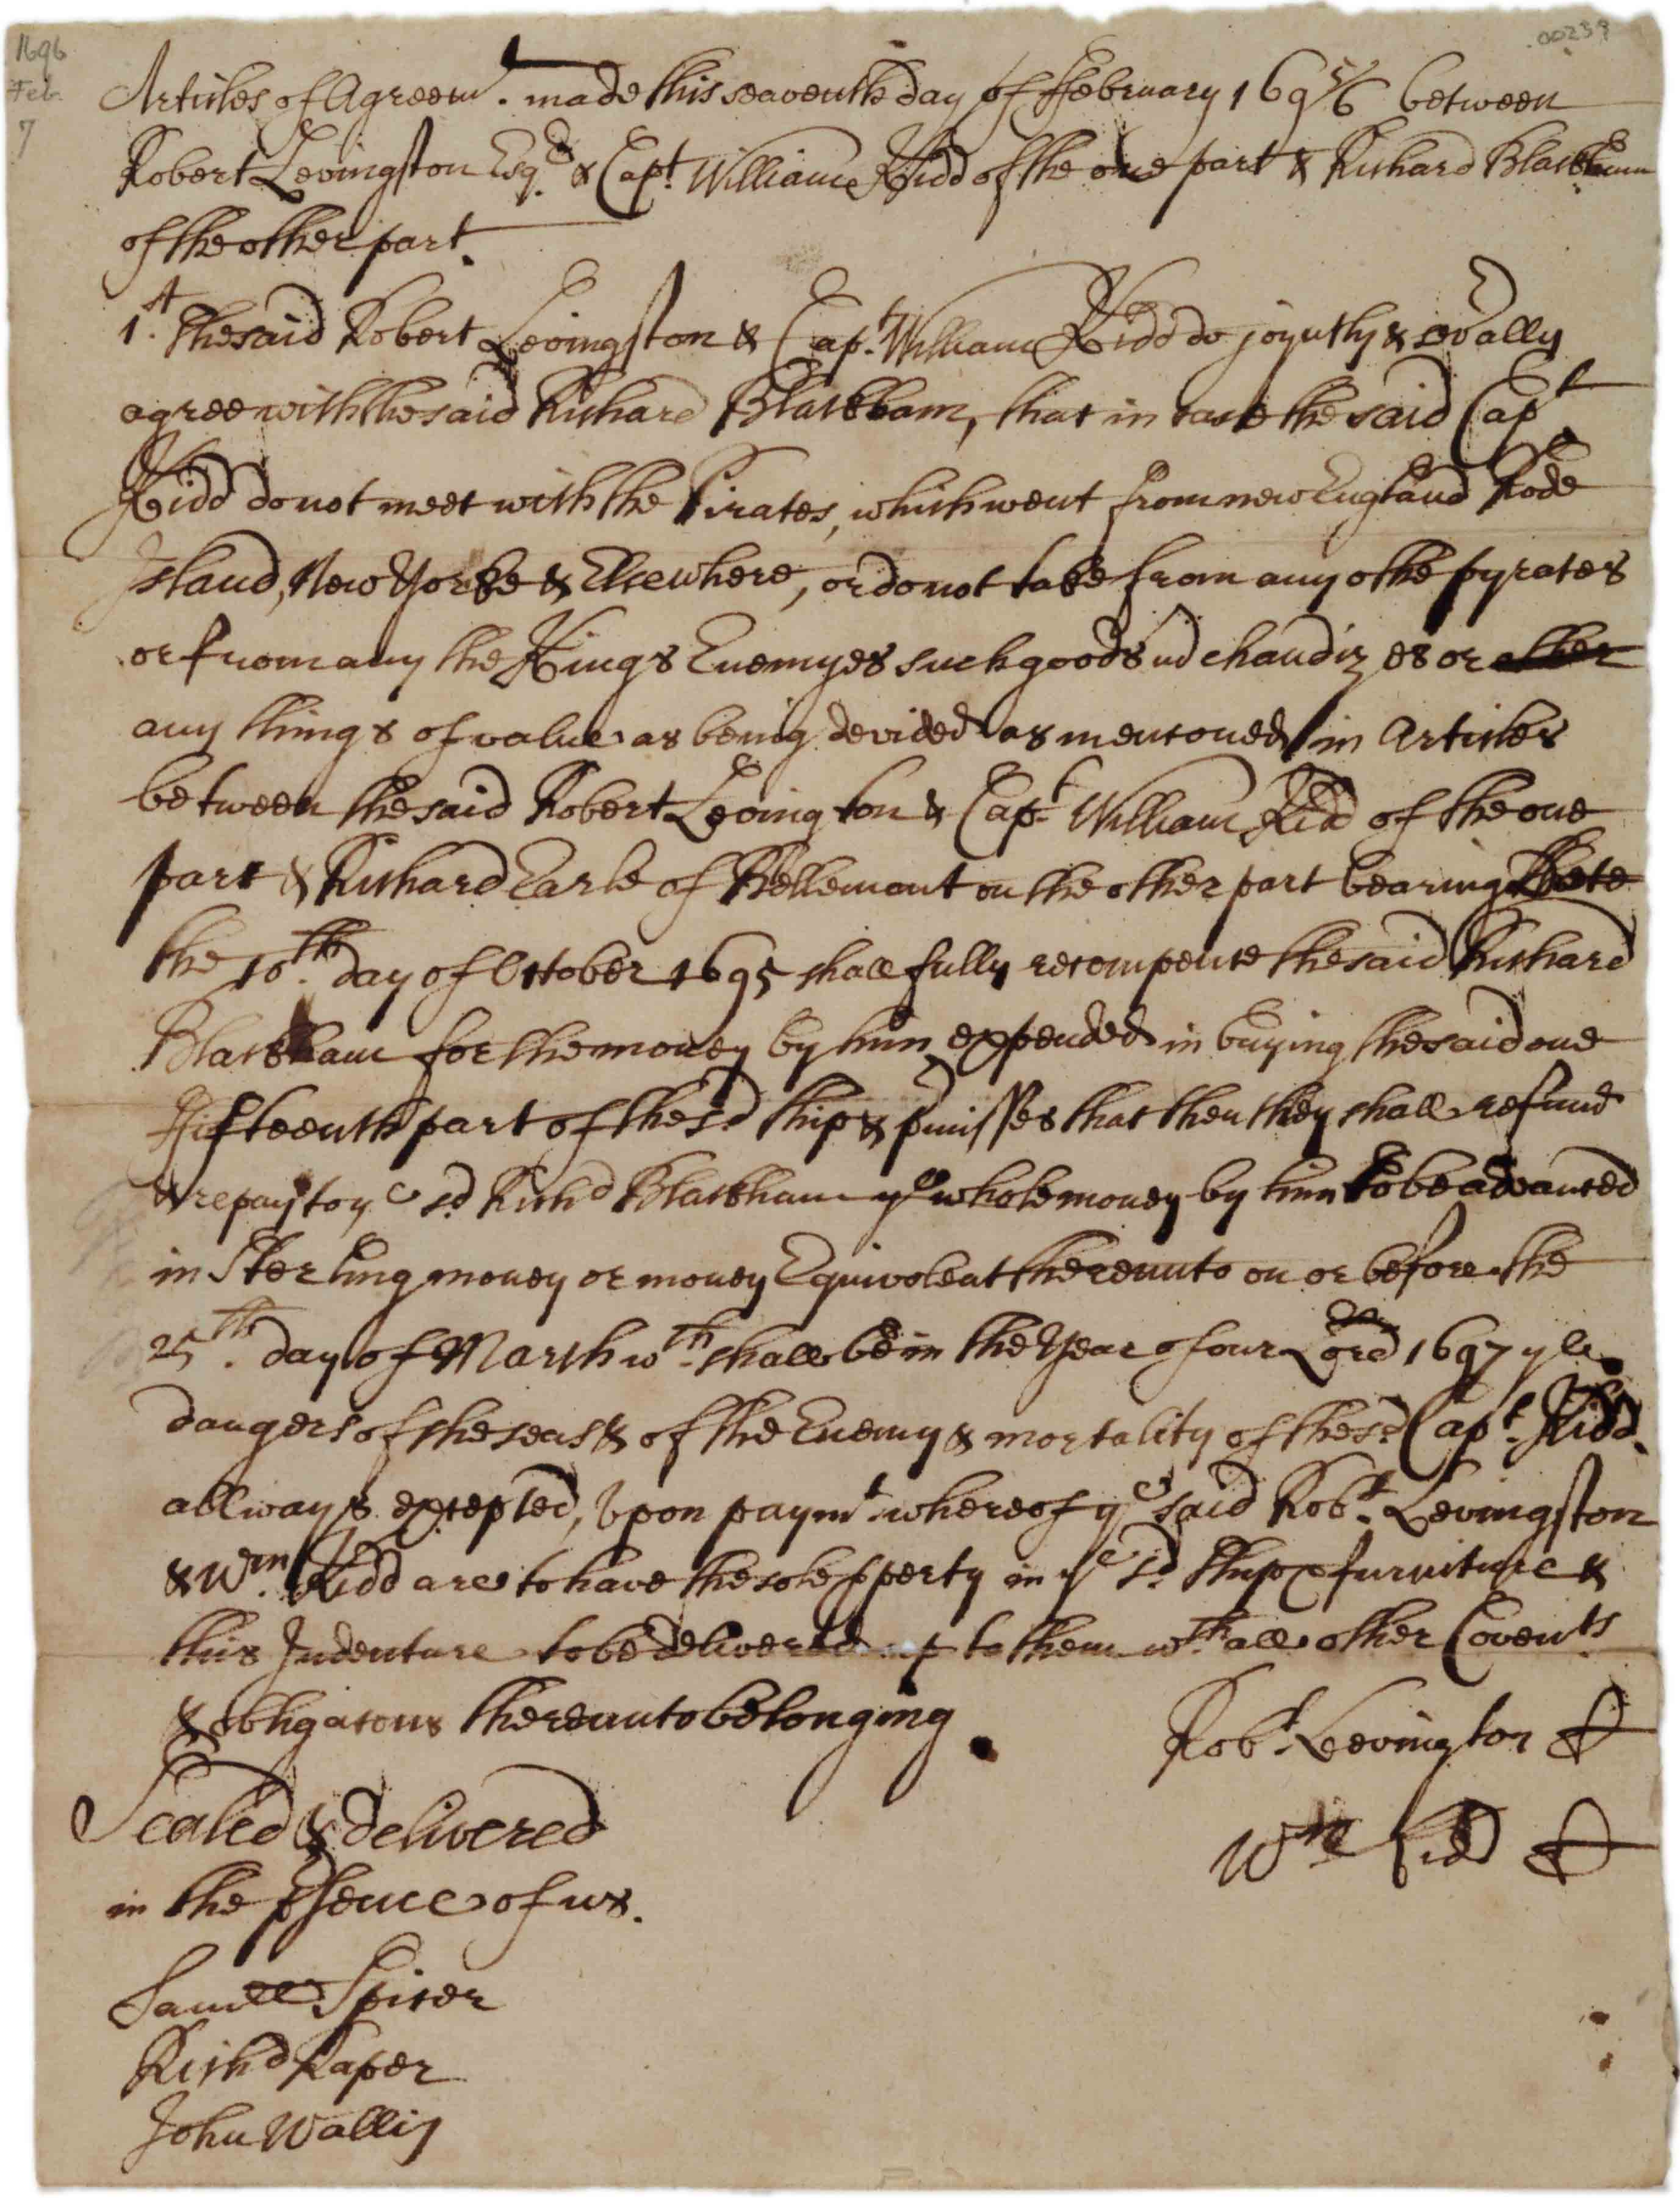 Agreement between Livingston and Kidd, and Blackham, 1696. (GLC)